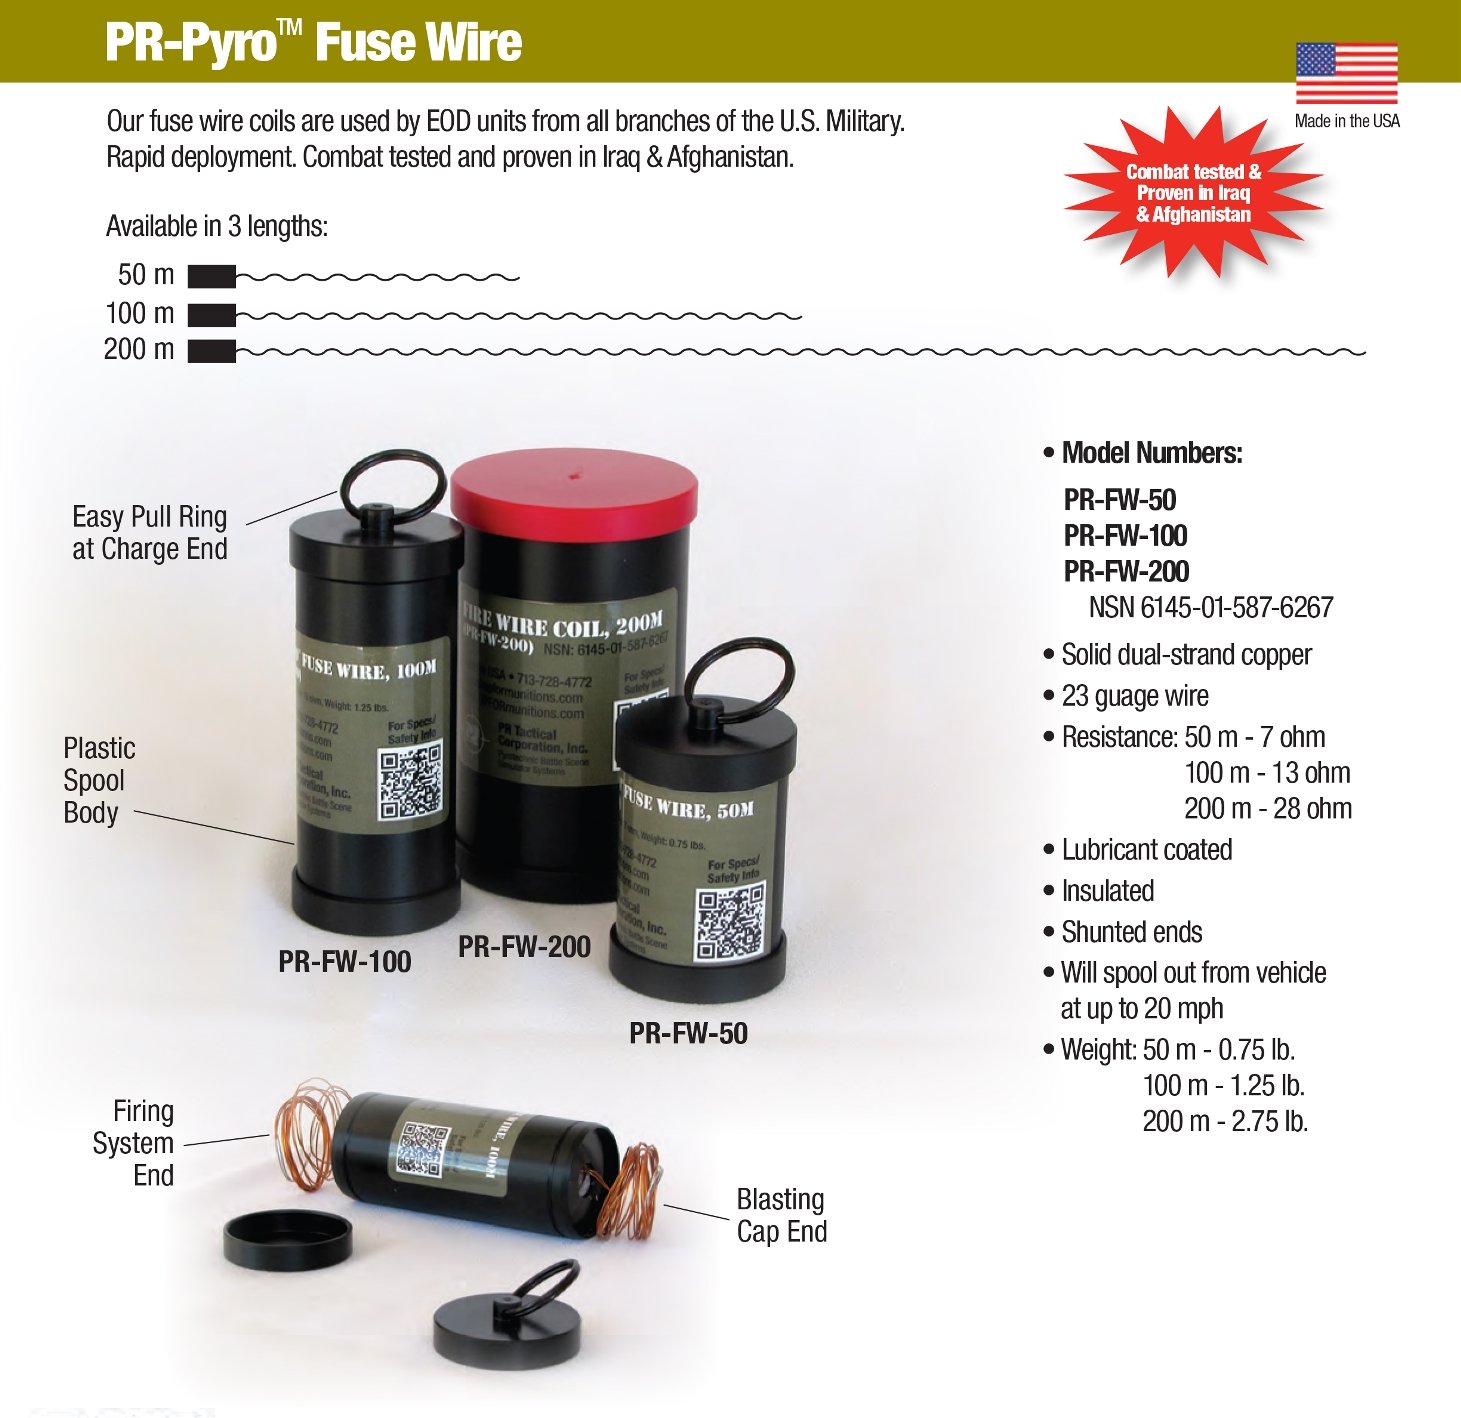 Eod Products